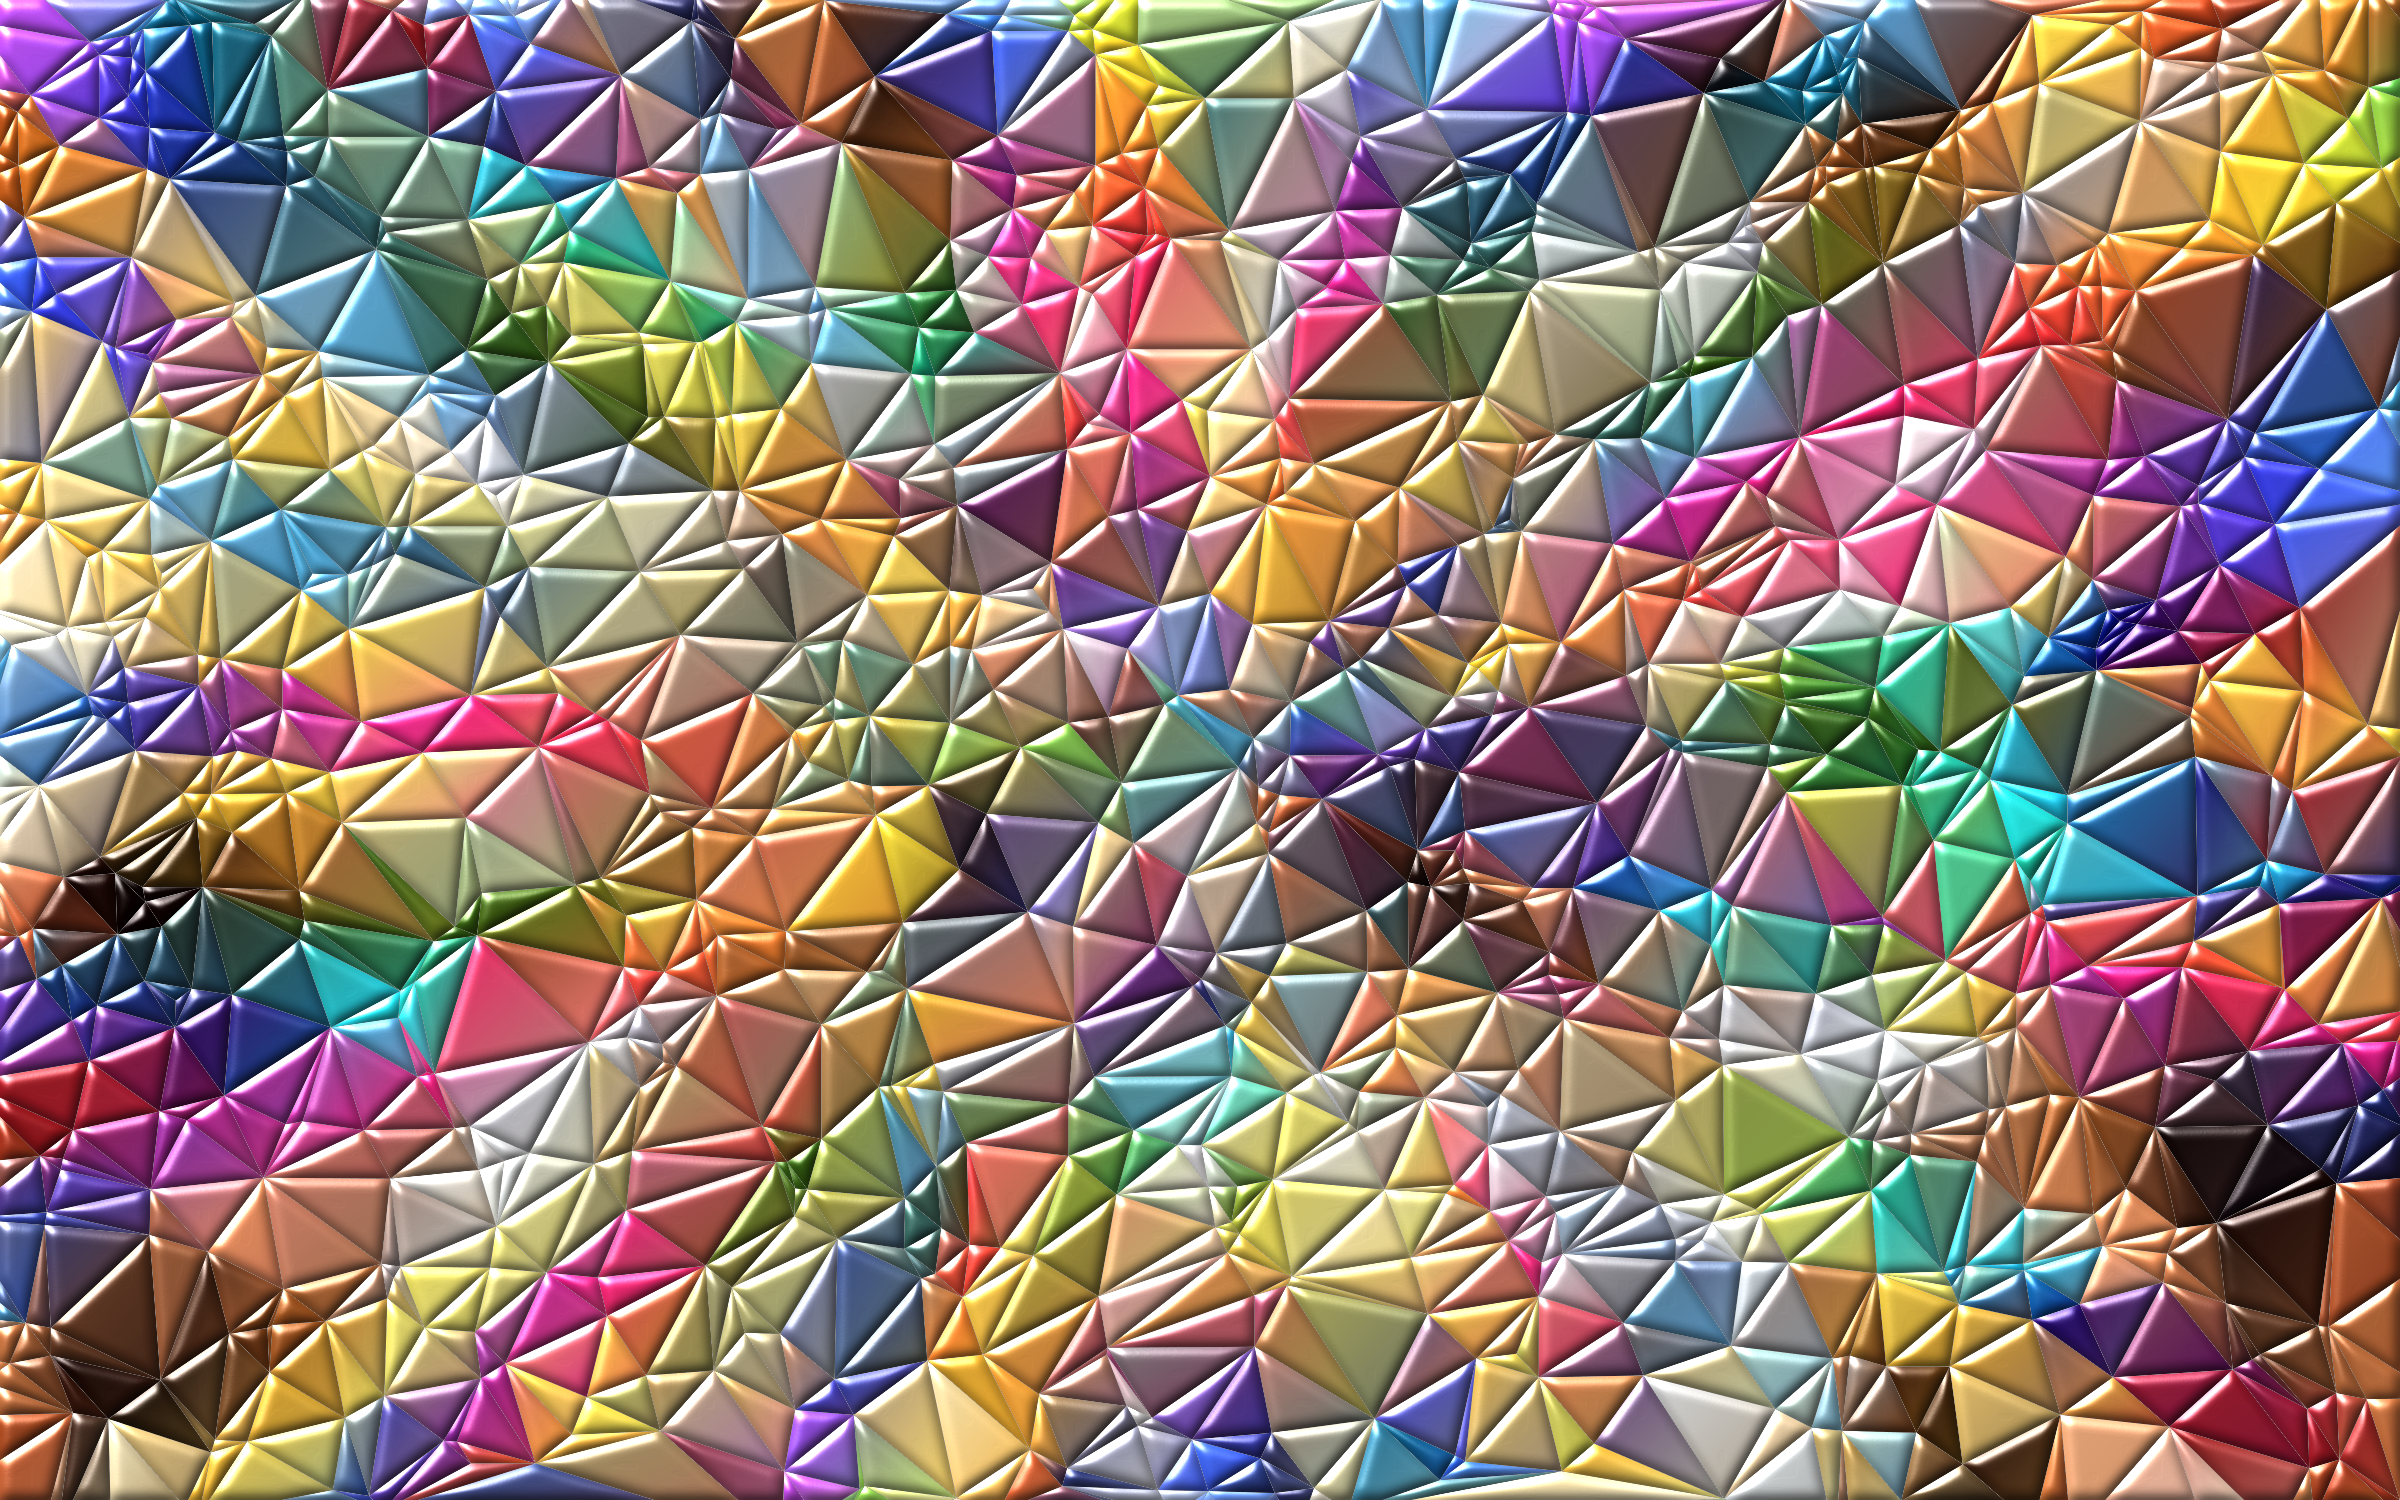 Colorful Low Poly Wallpaper Enhanced 2 by GDJ